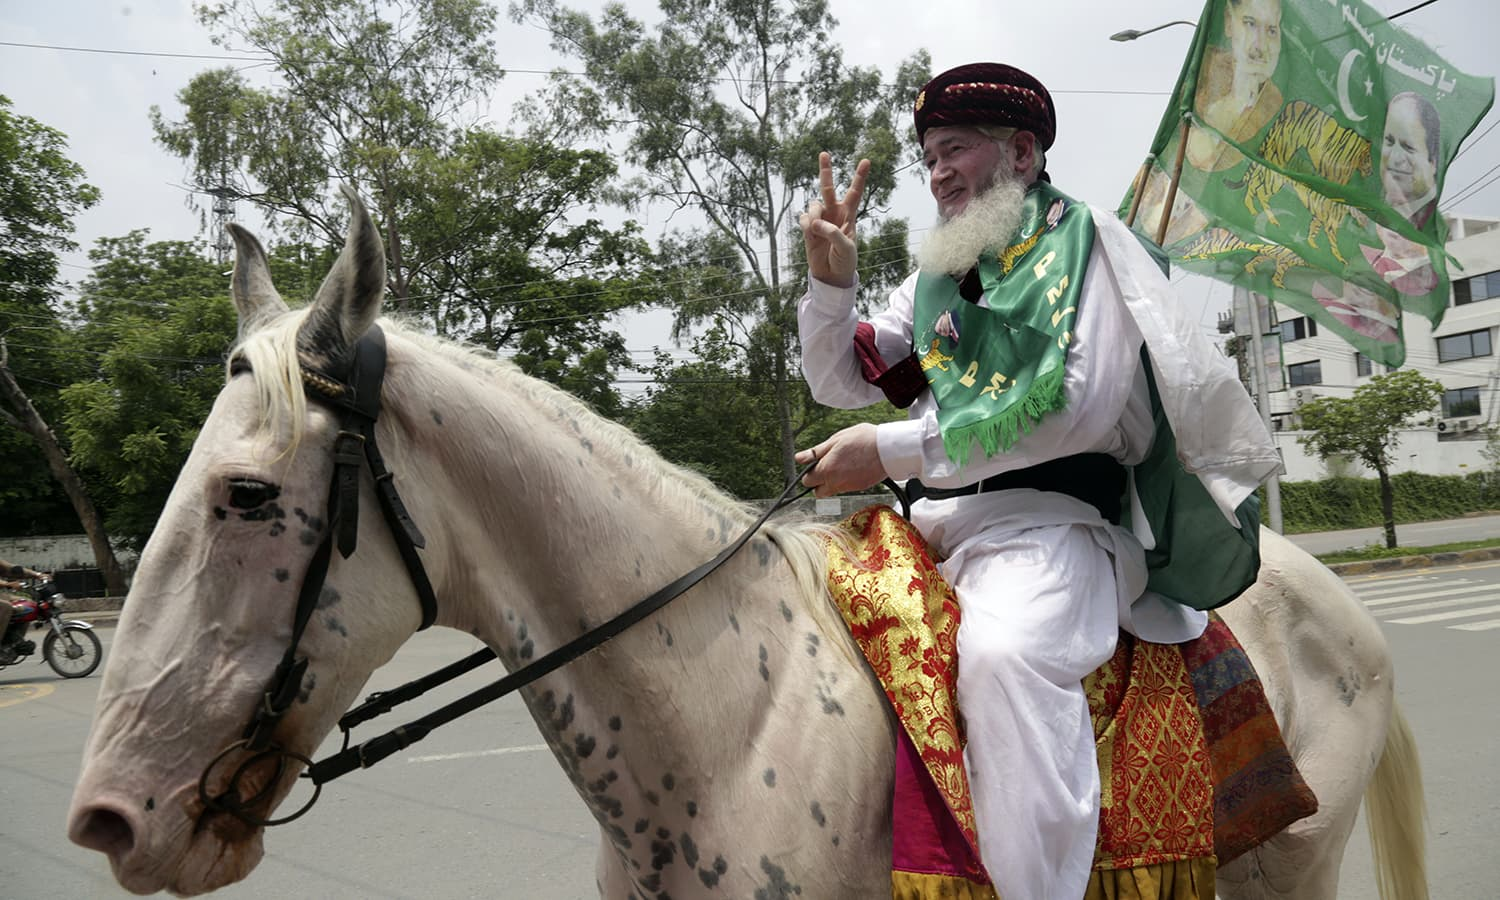 A supporter of former prime minister Nawaz Sharif arrives at a polling station to cast his vote in Lahore. — AP